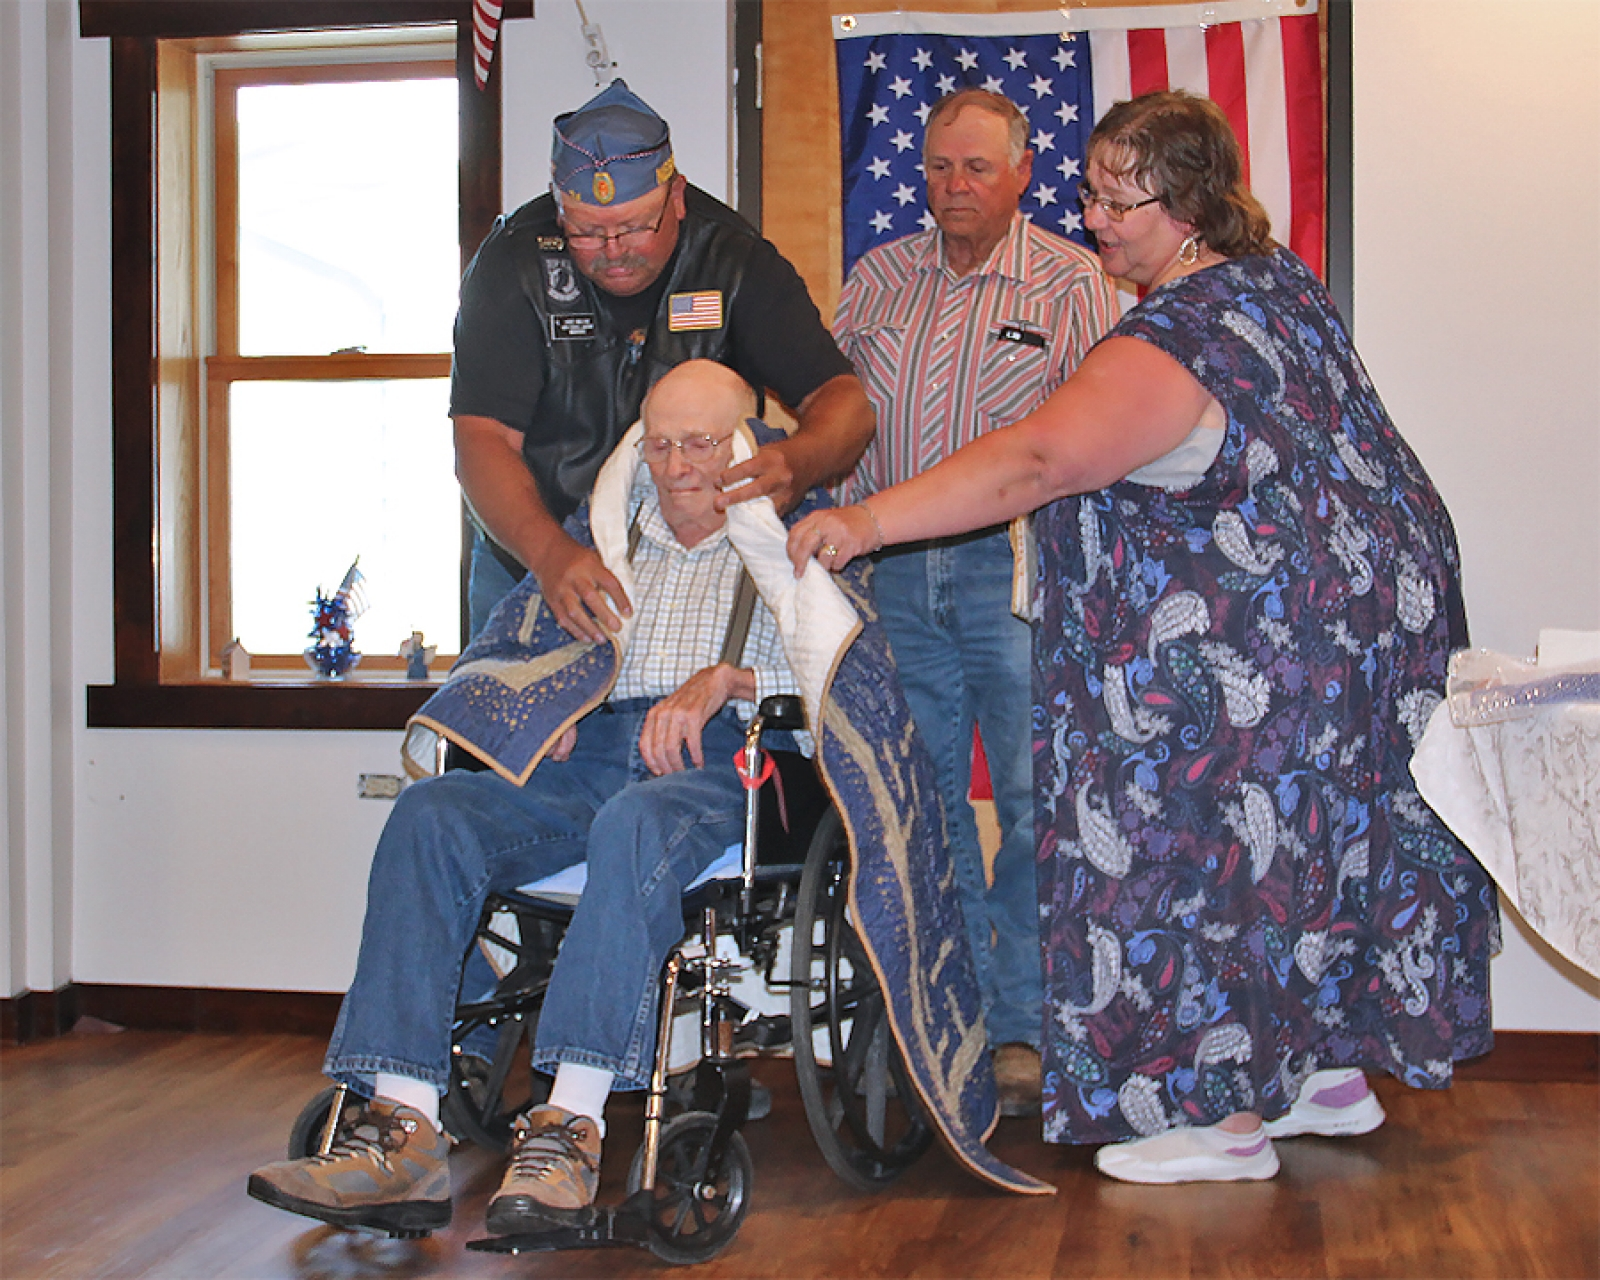 Green receives Quilt of Valor on 74th anniversary of D-Day invasion